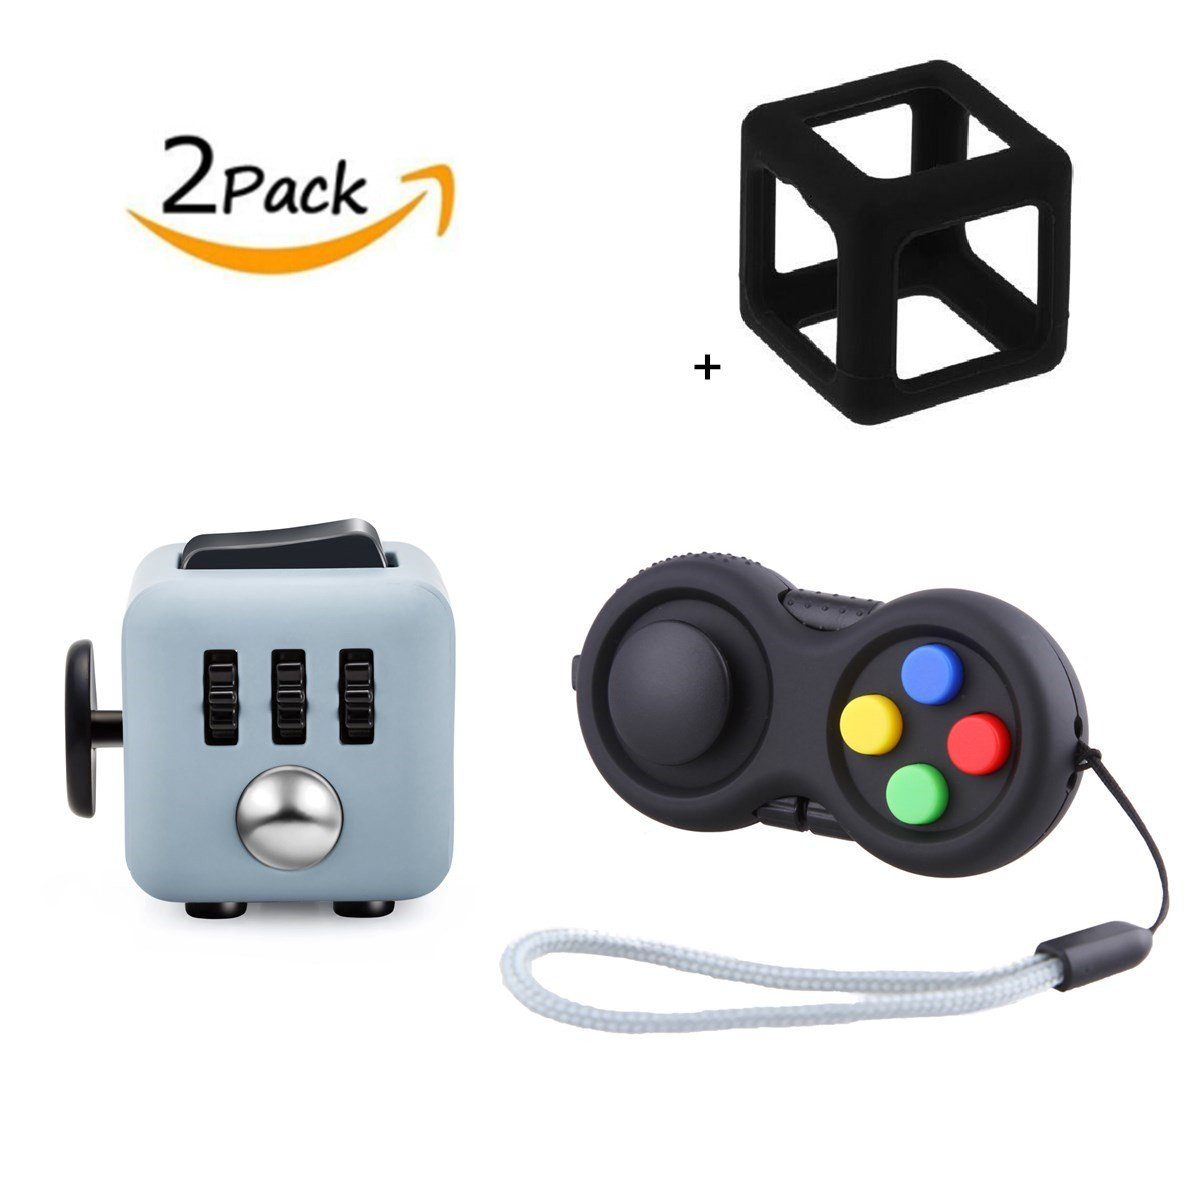 FIDGET DICE Fidget Toys Pack of 2, Fidget Pad and Cube Set With Silicone Frame, For Work/Class/Home, Black and Grey